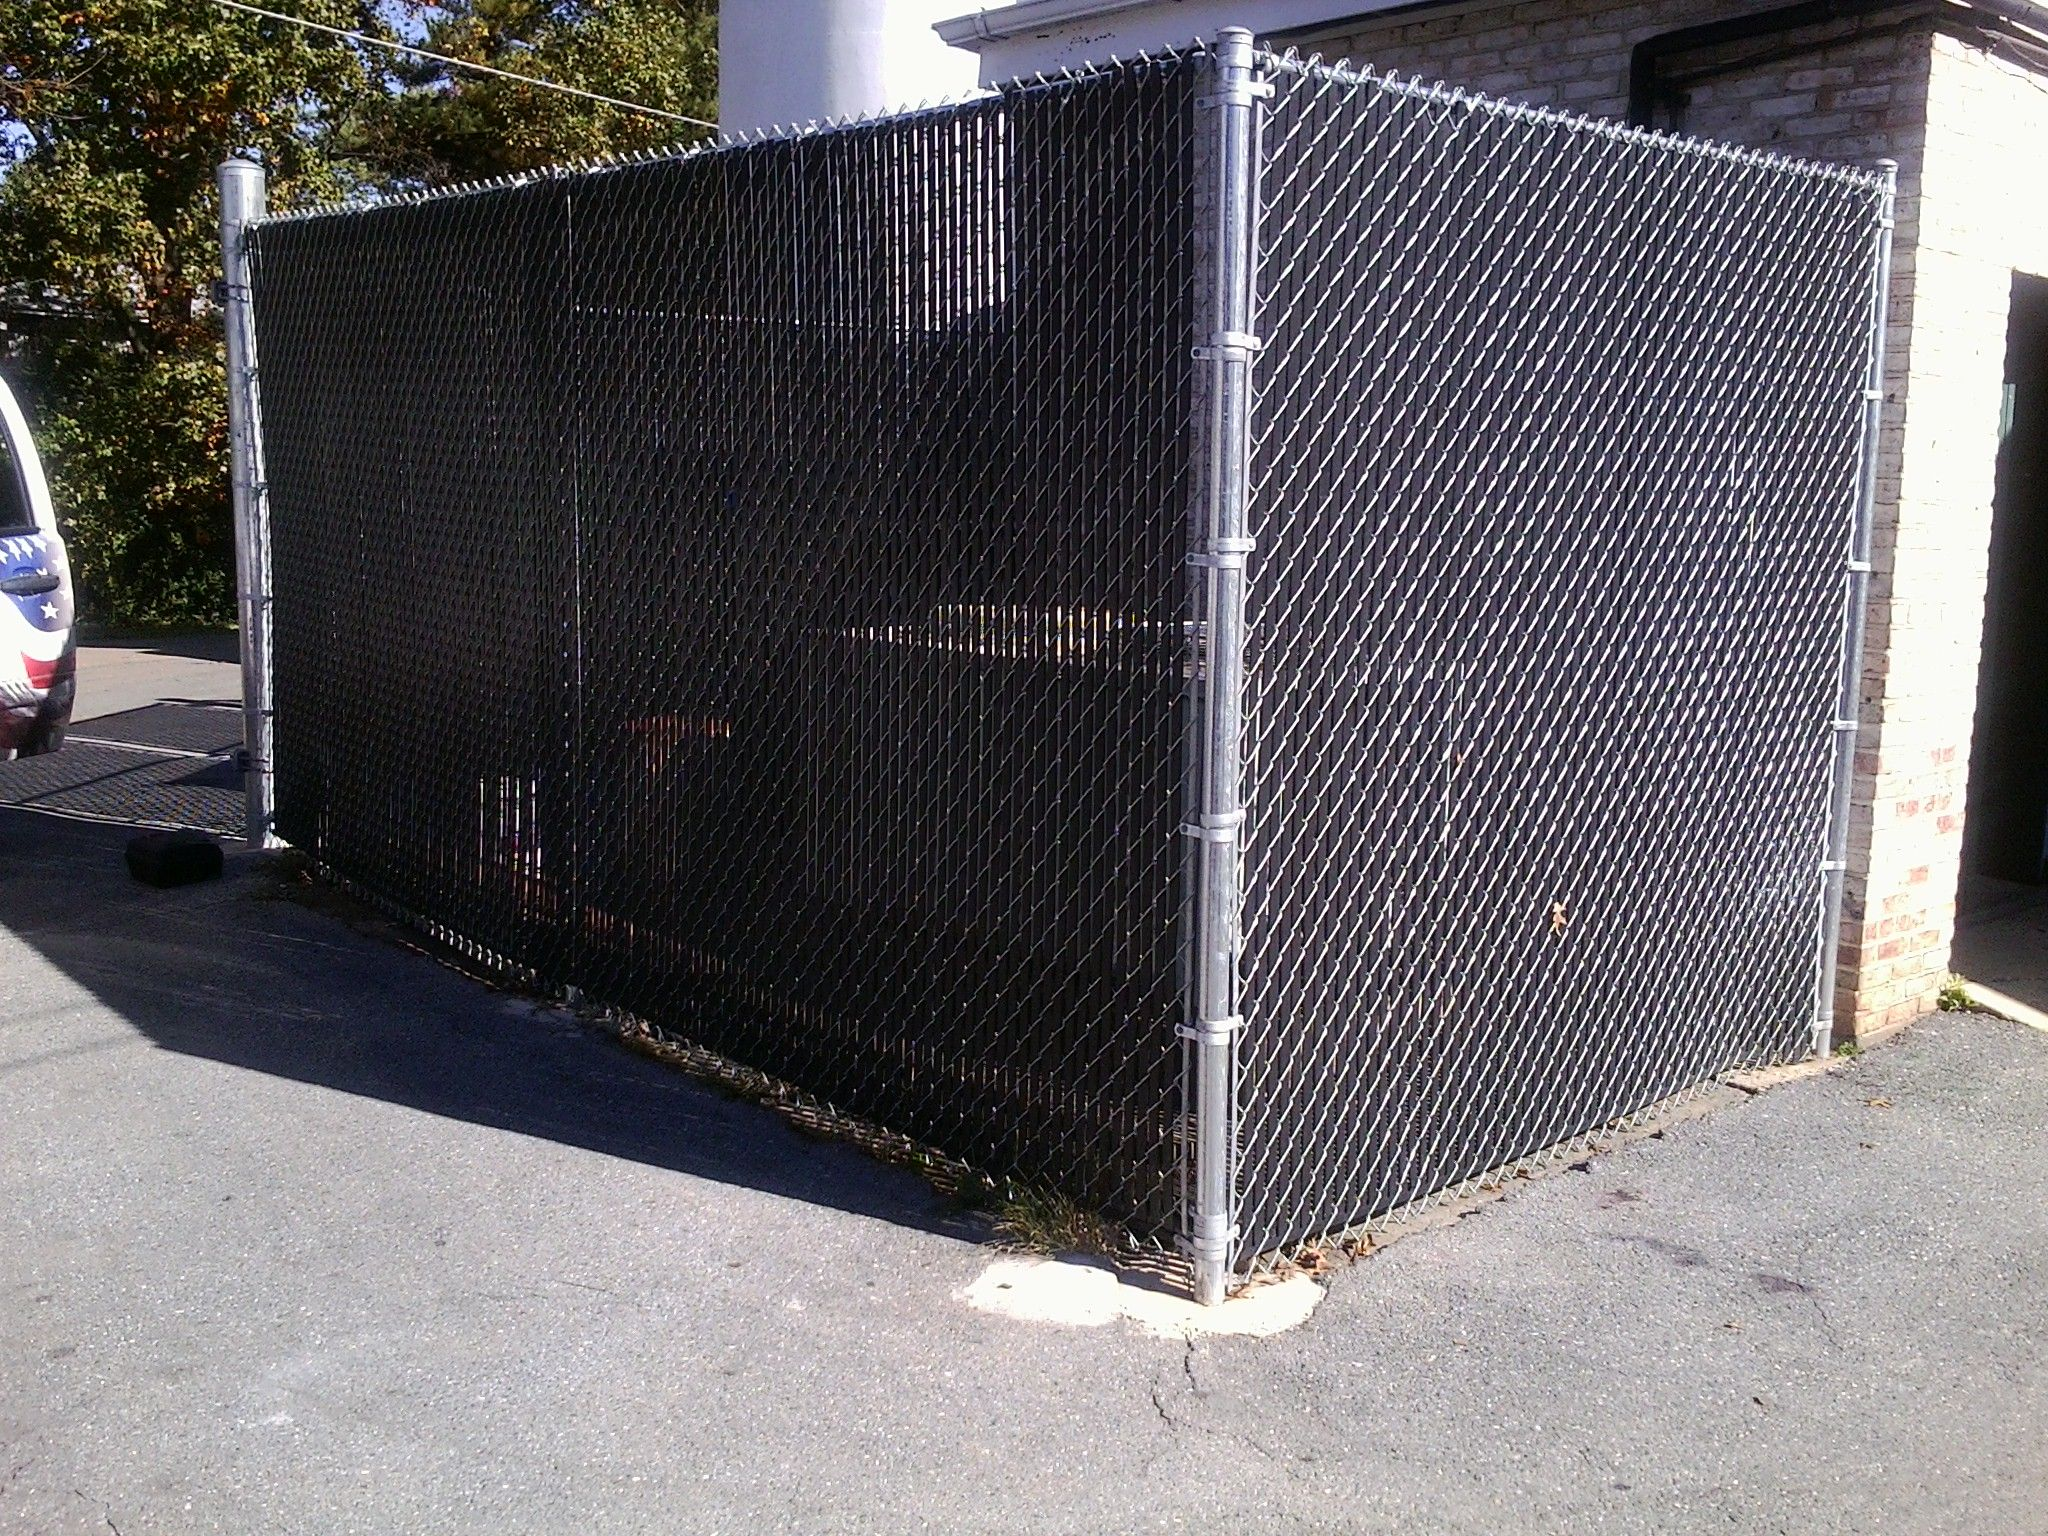 Privacy screen for chain link fence sears - Fence Hide Hvac Units With Black Chain Link Fence With Mesh